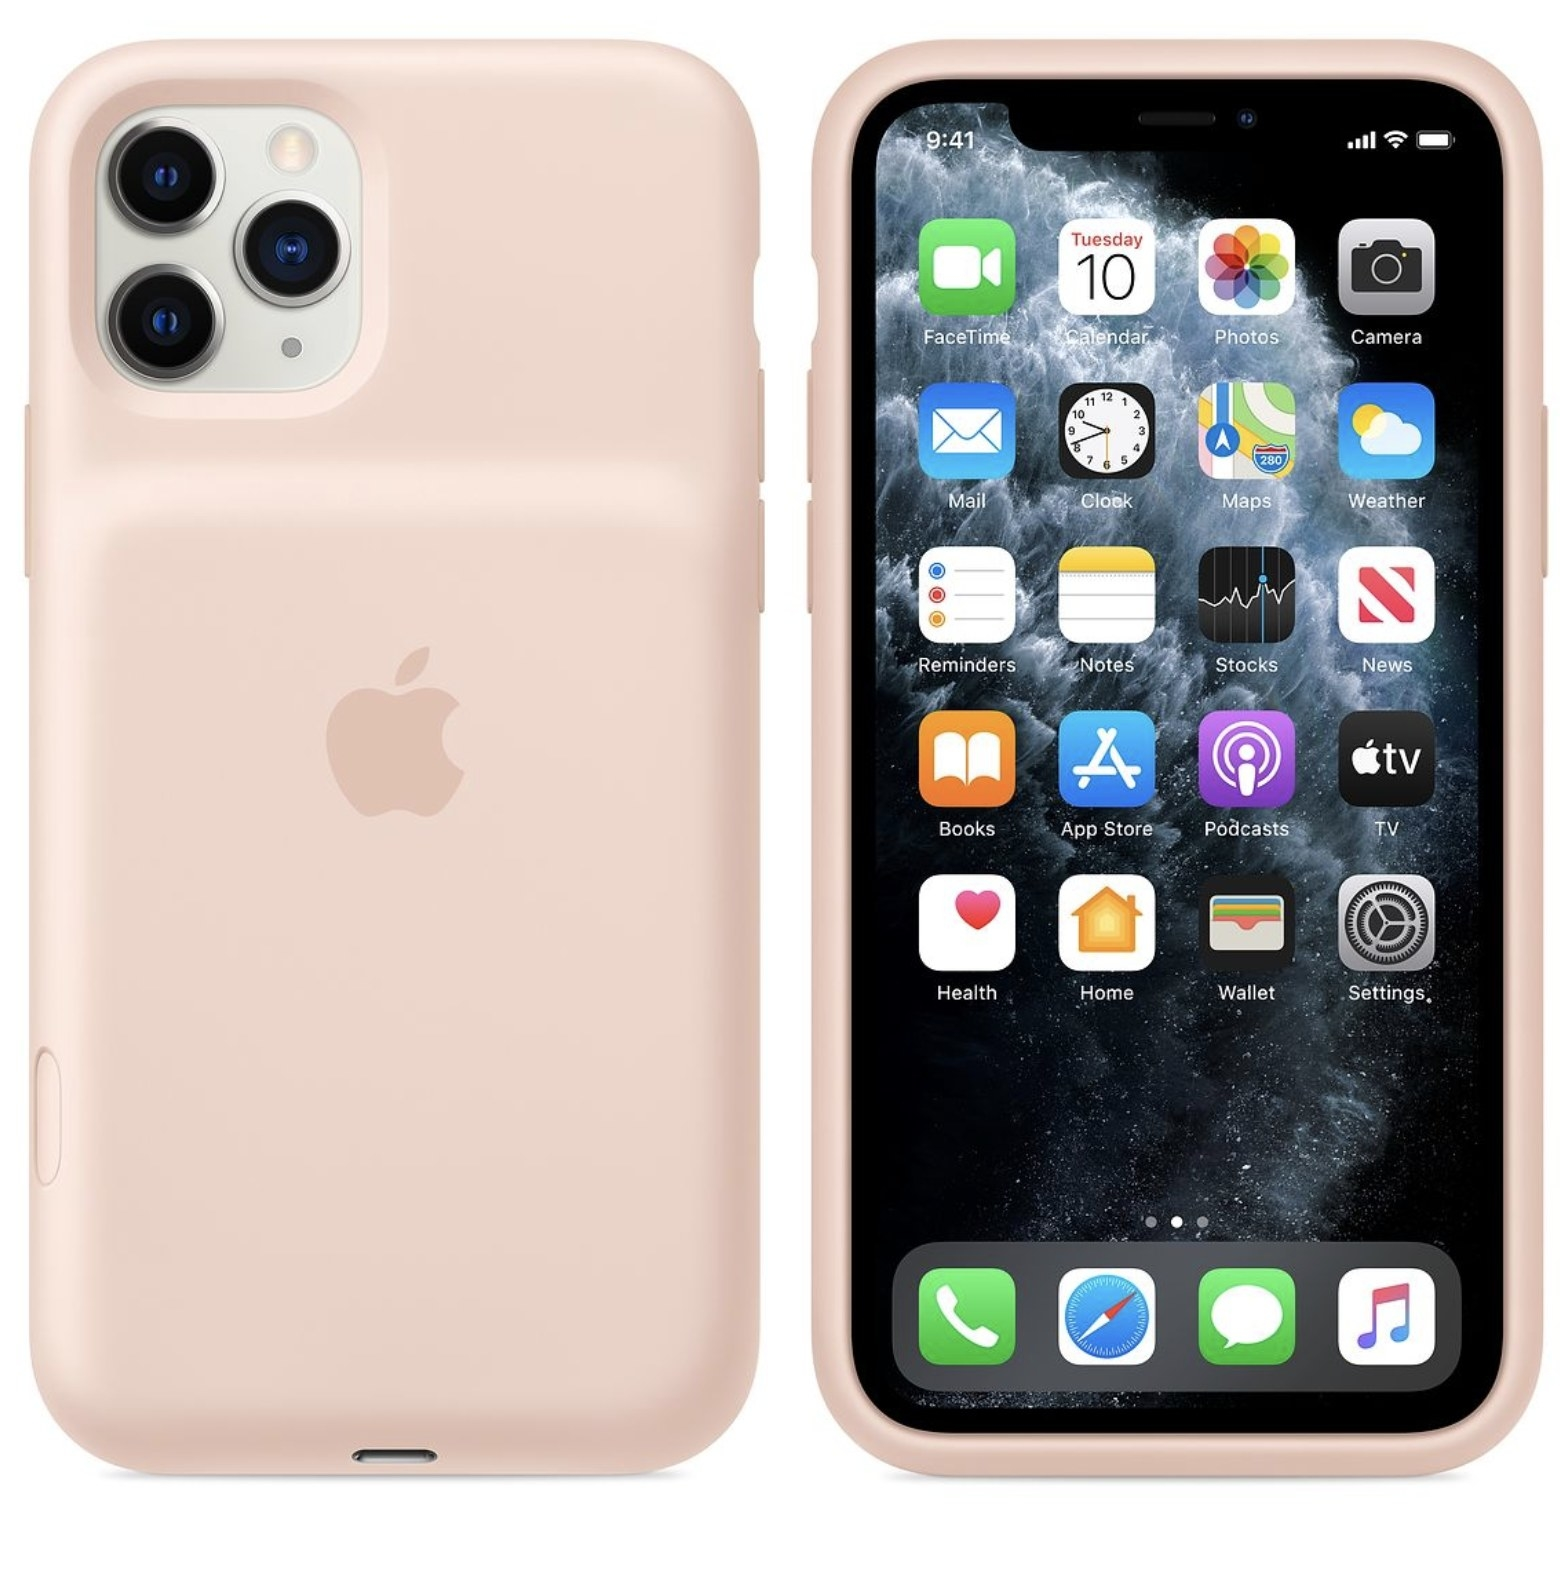 Front and back views of a light pink phone charger case with an iPhone inside